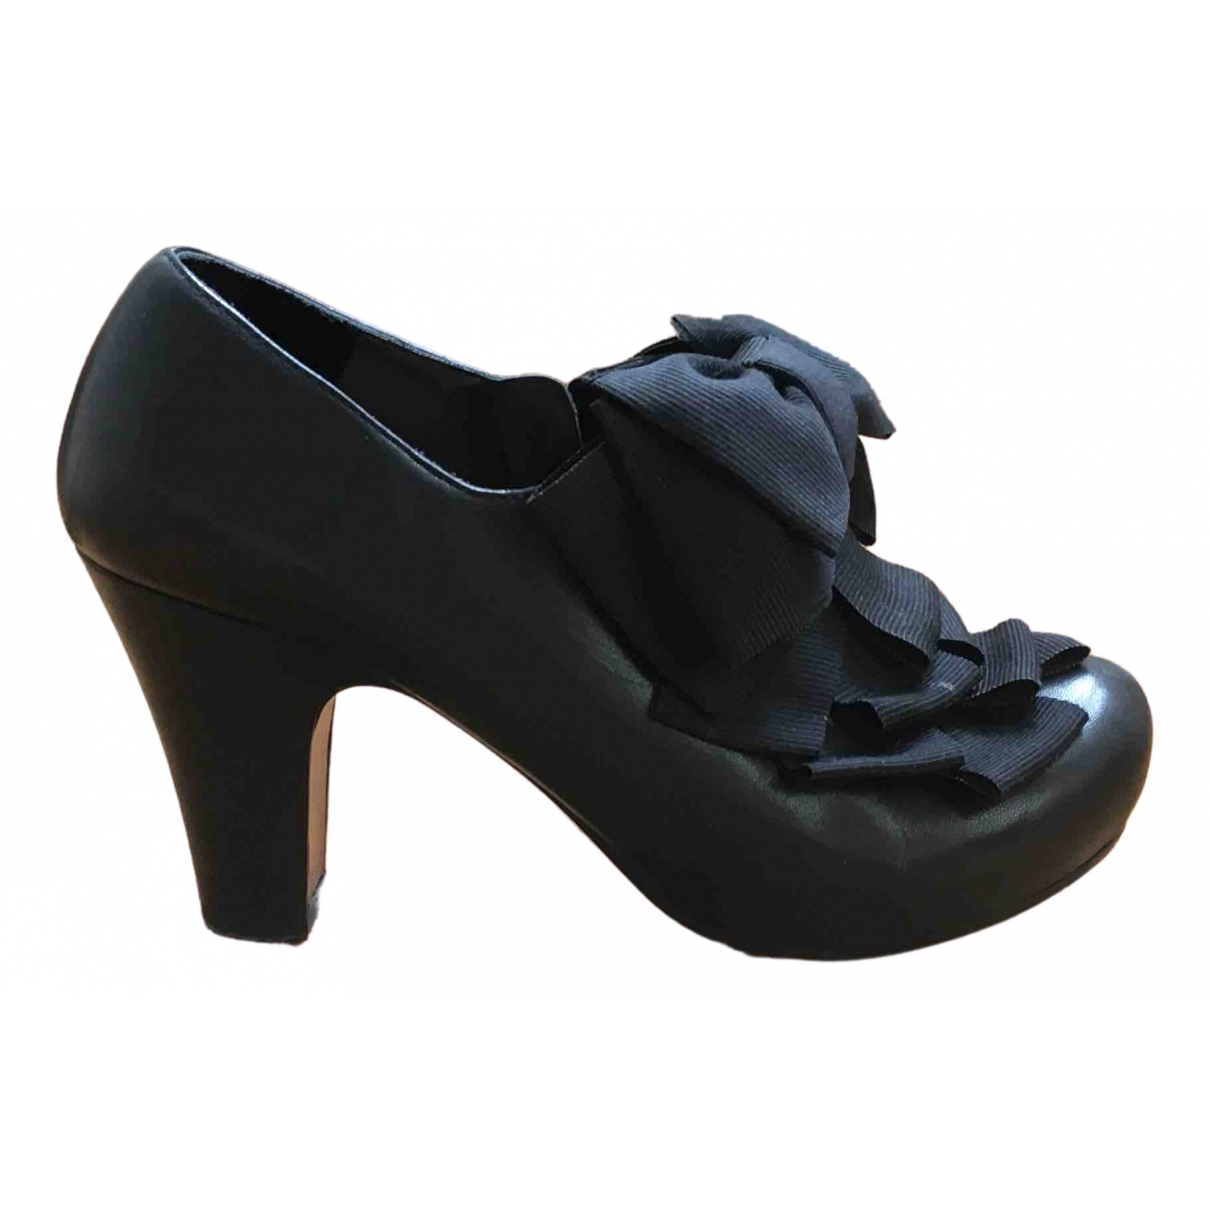 Chie Mihara N Black Leather Heels for Women 36 IT